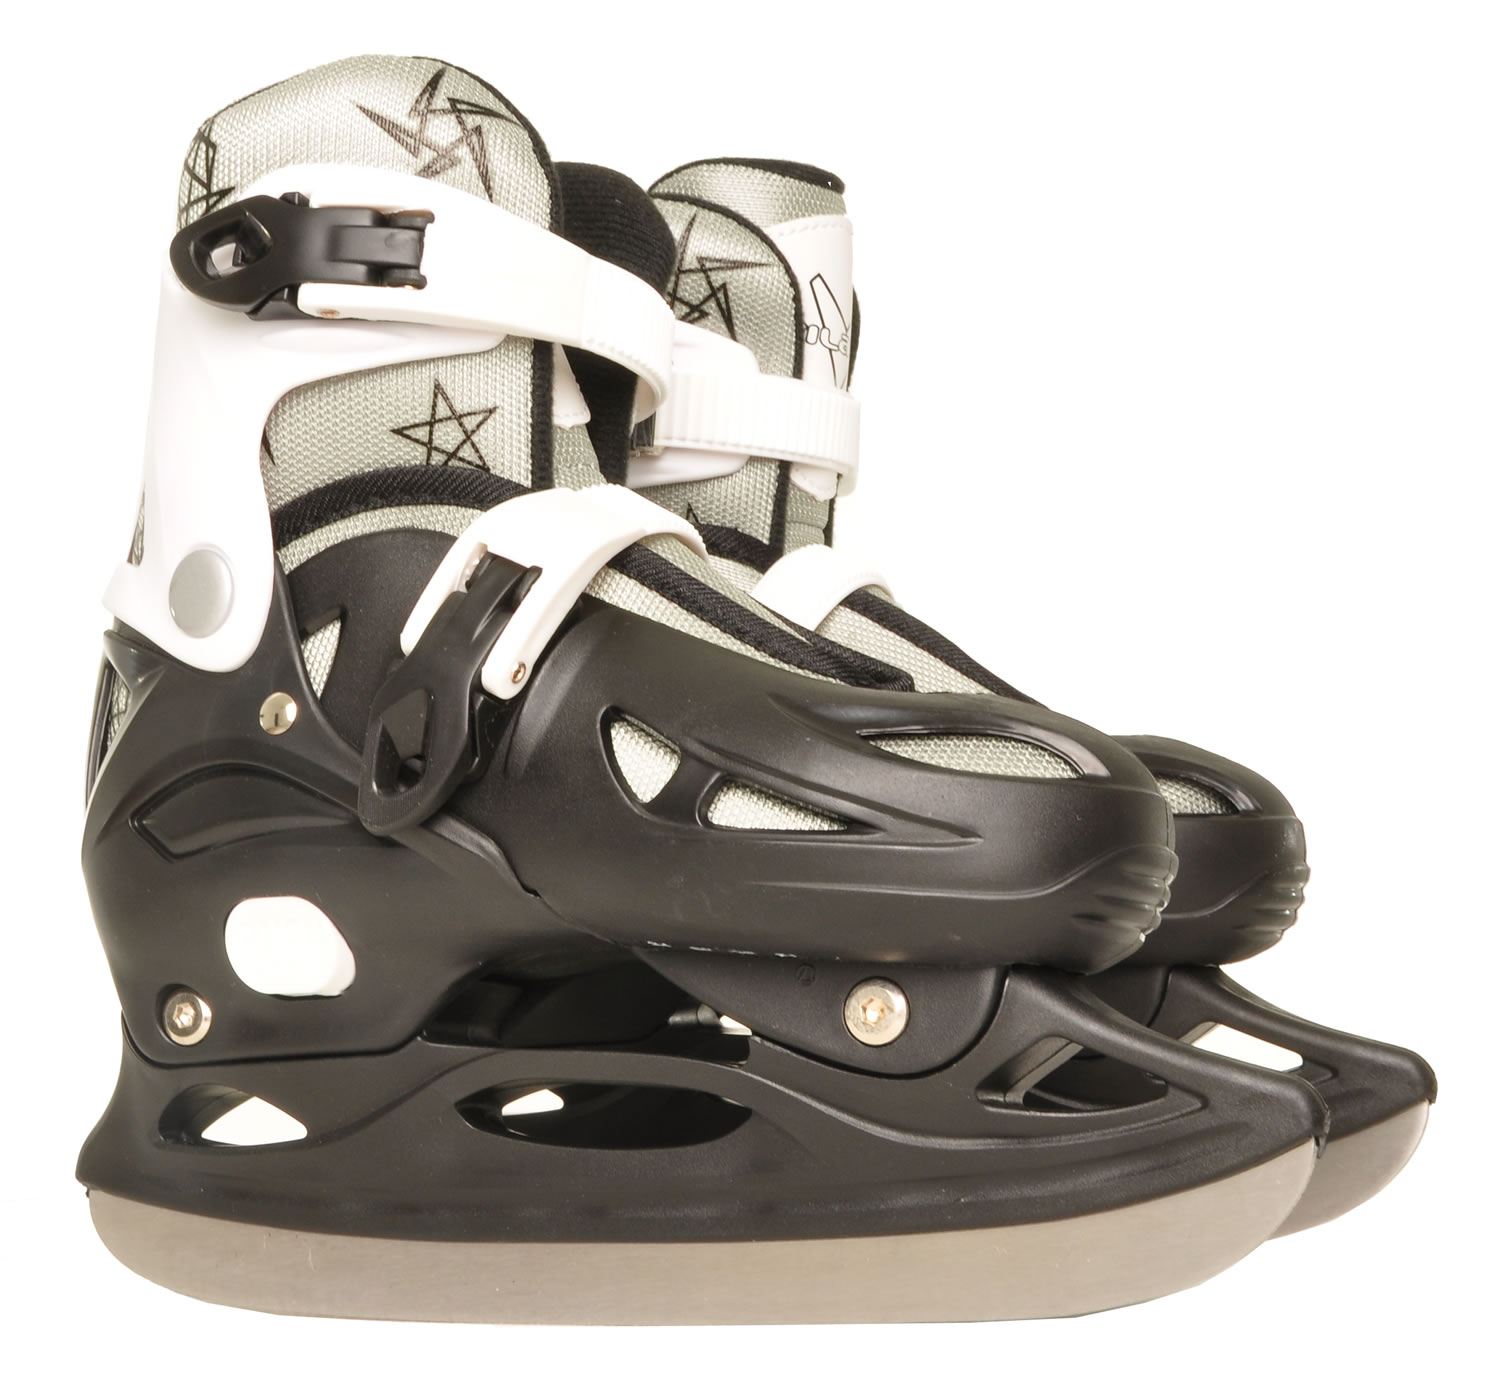 Vilano Adjustable Ice Skates for Boys or Girls by